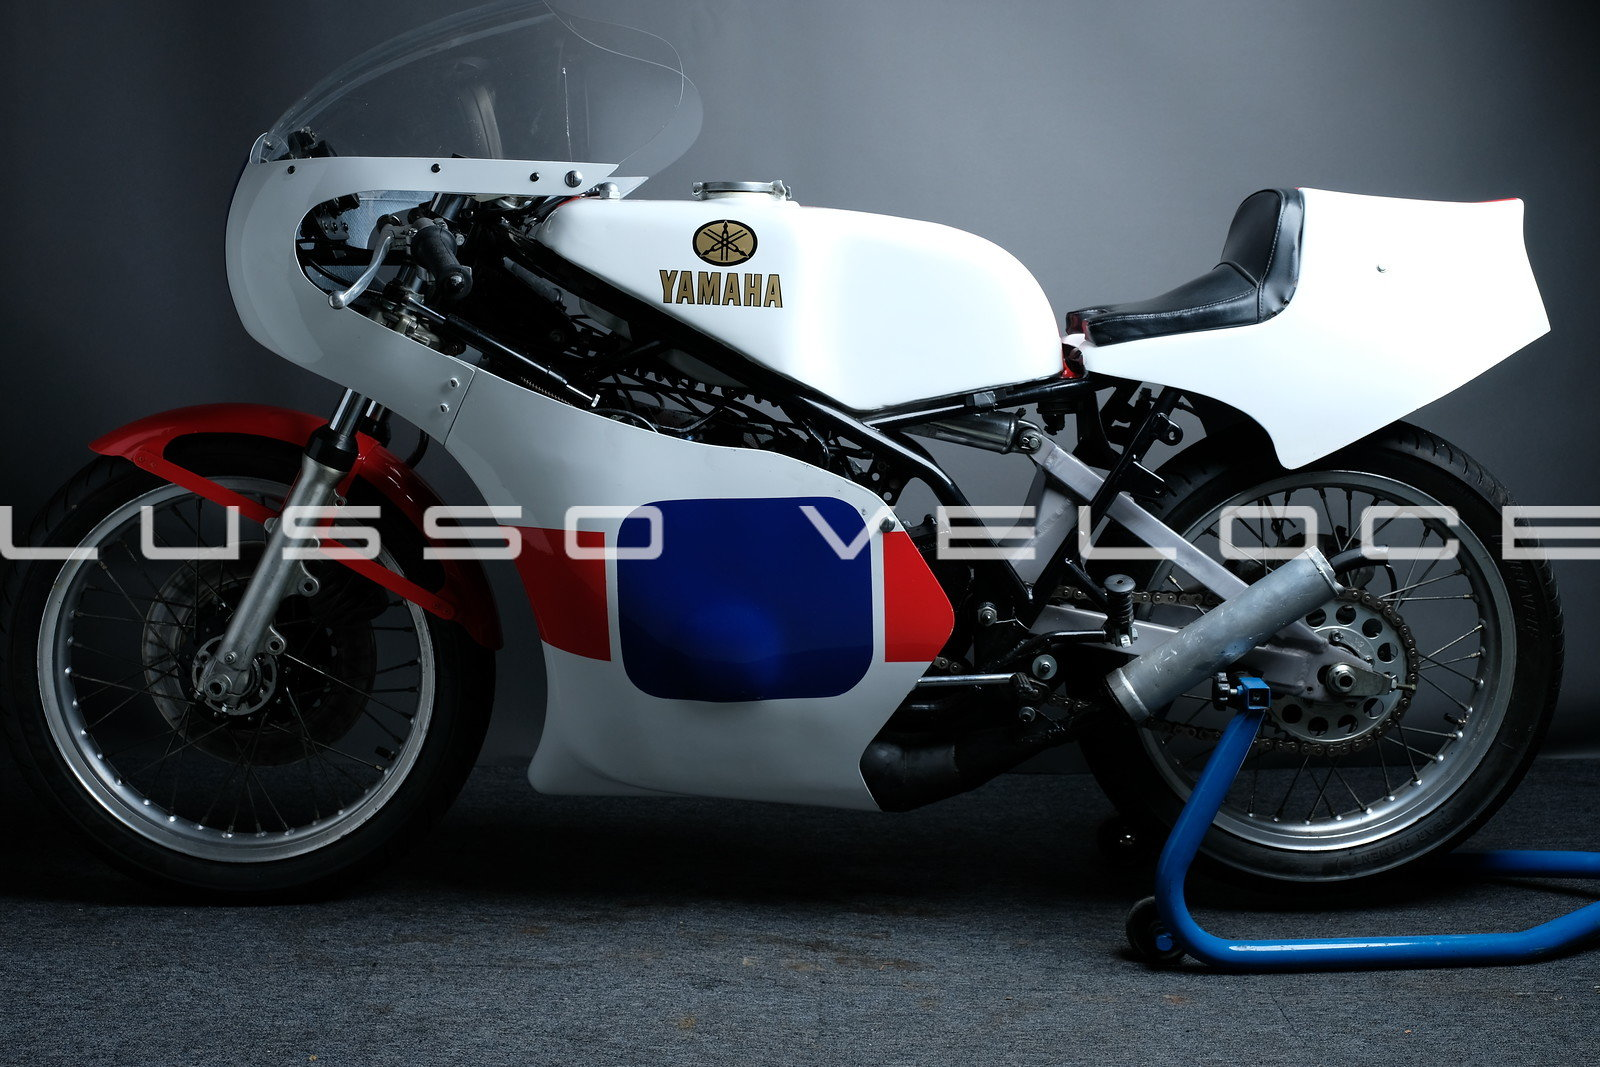 1979 Yamaha TZ 350 F GP Race bike For Sale (picture 2 of 6)